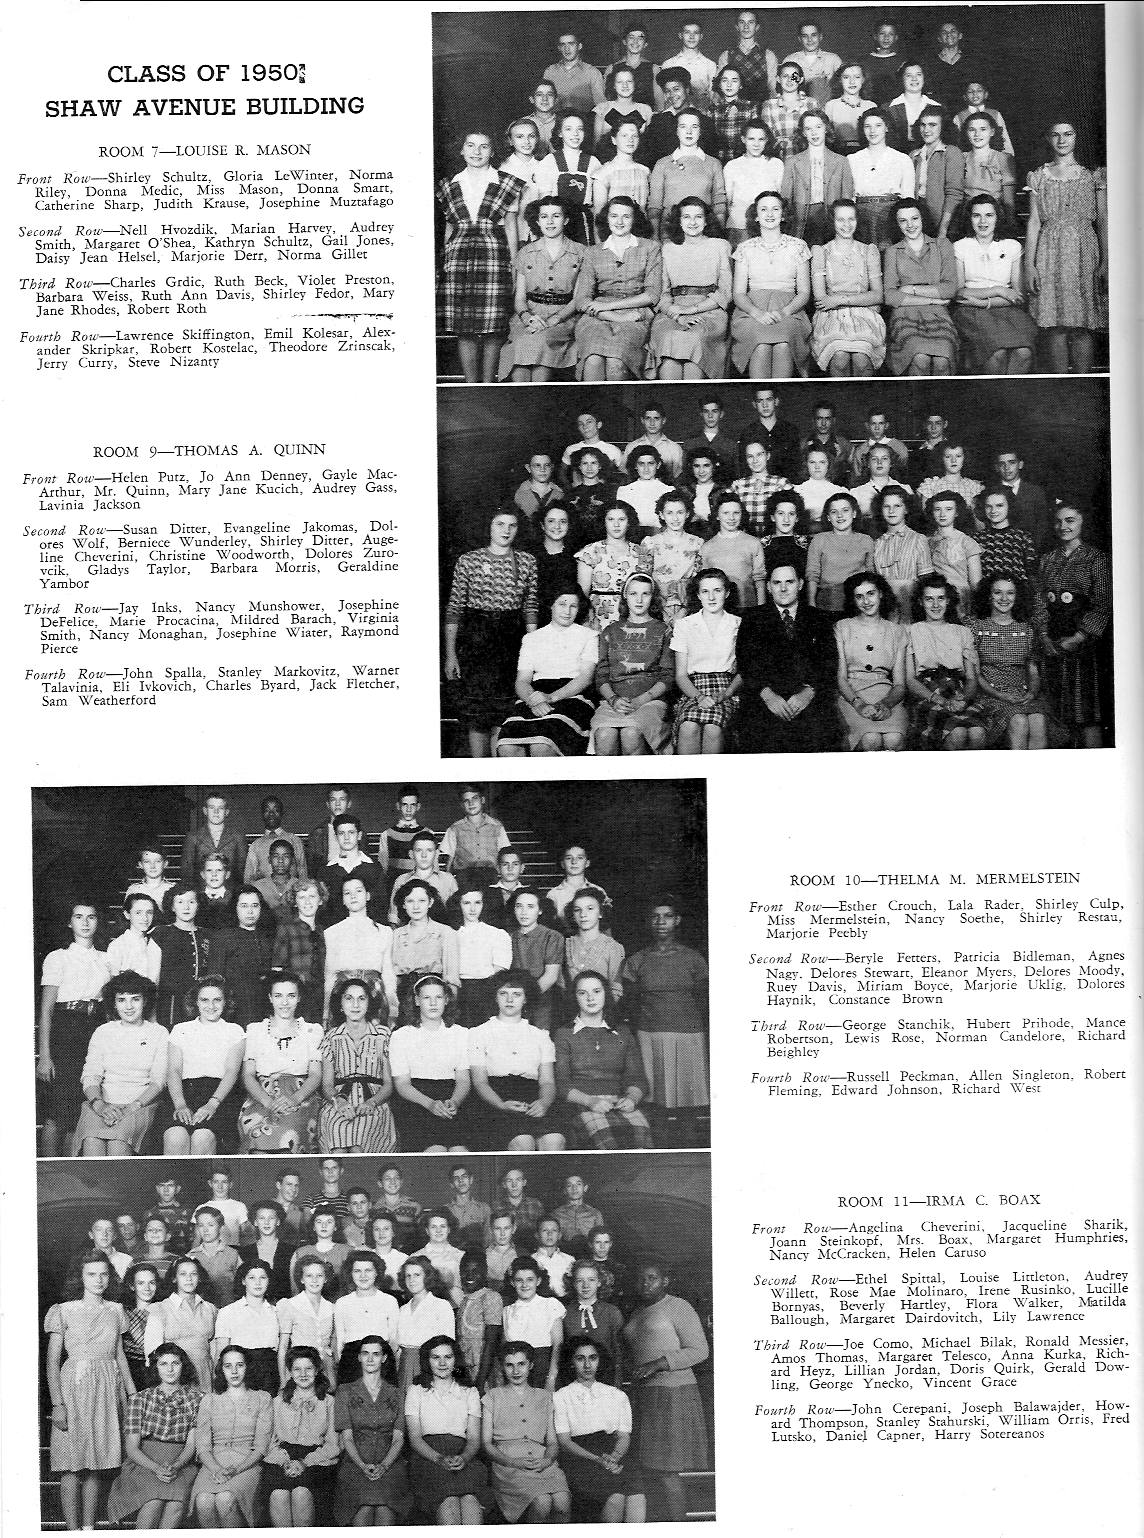 Yough-A-Mon - 1947 yearbook for McKeesport High School